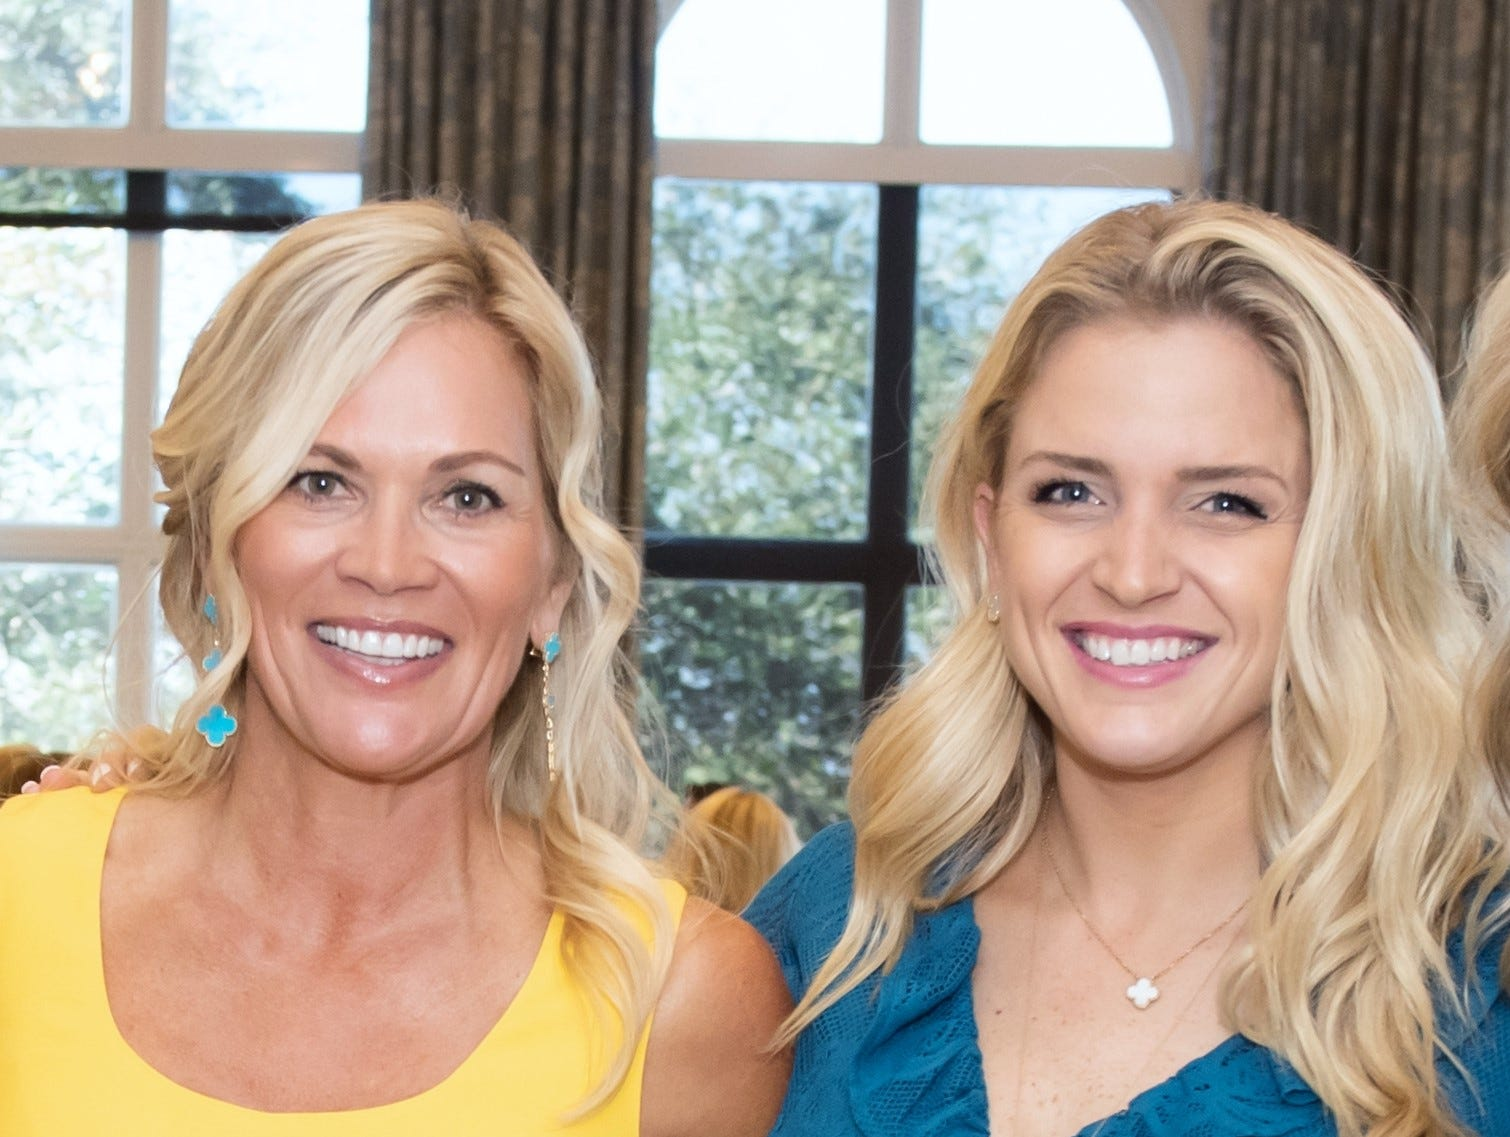 Alli Nicklaus, left, and Christie Nicklaus at the Golden Heart Luncheon in Palm Beach Gardens.